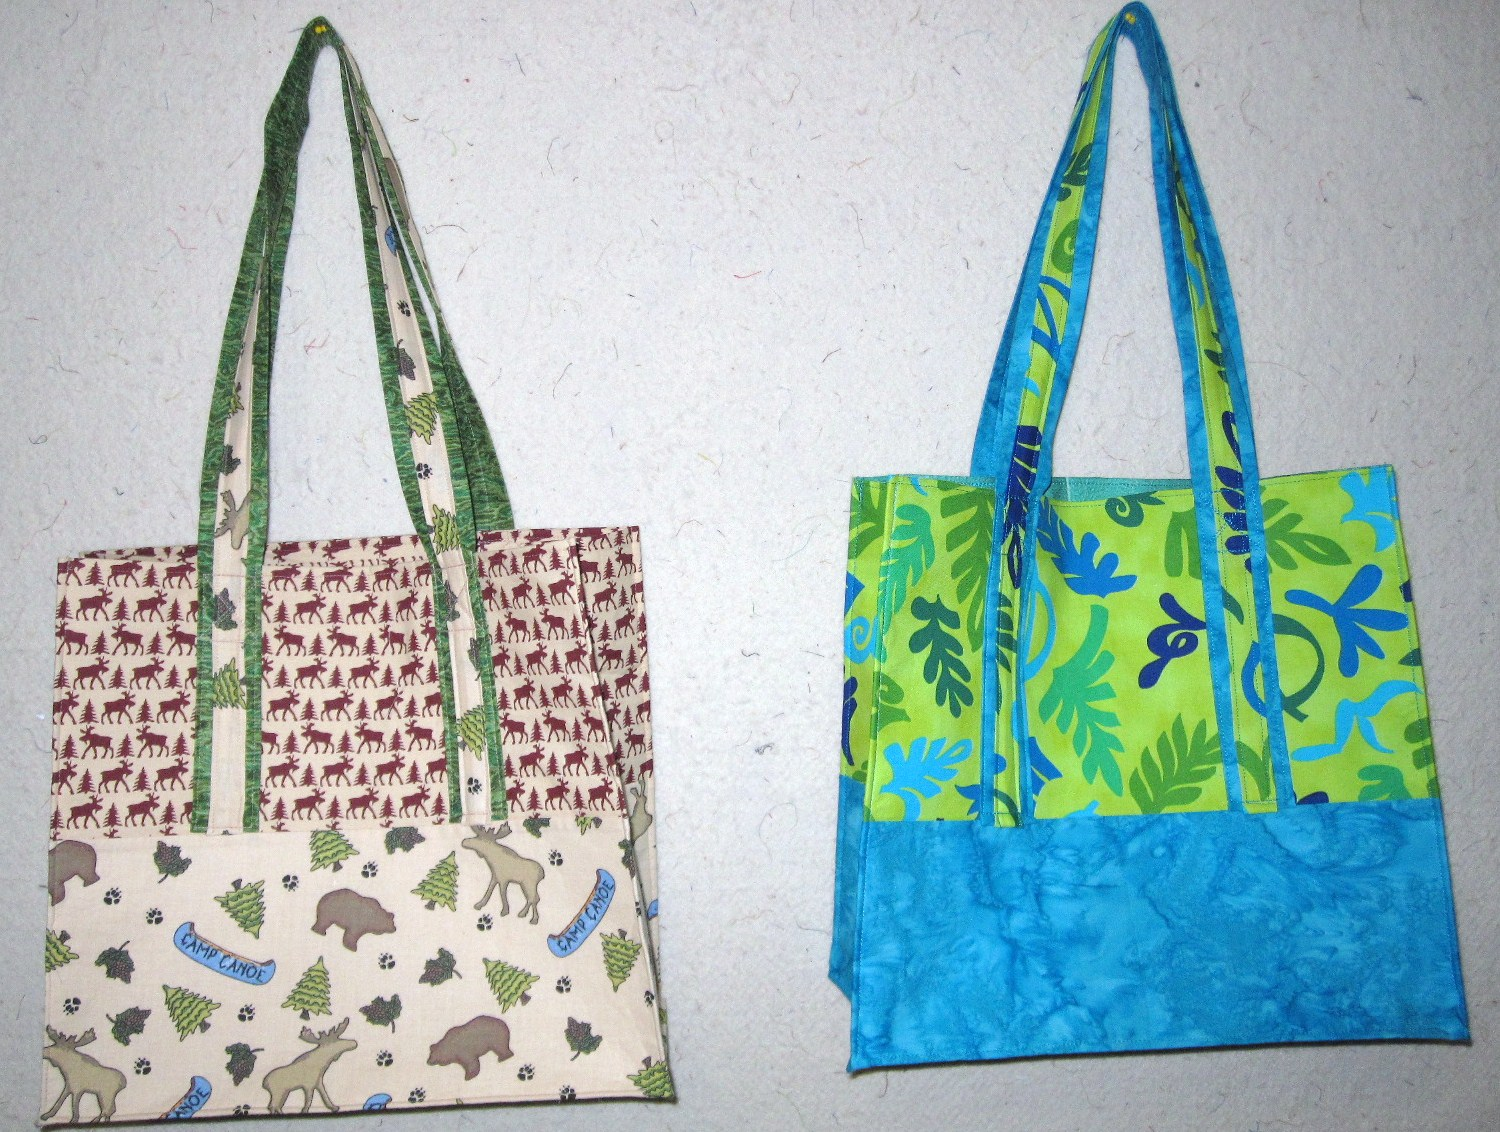 Free pattern day tote bags quilt inspiration bloglovin jeuxipadfo Gallery